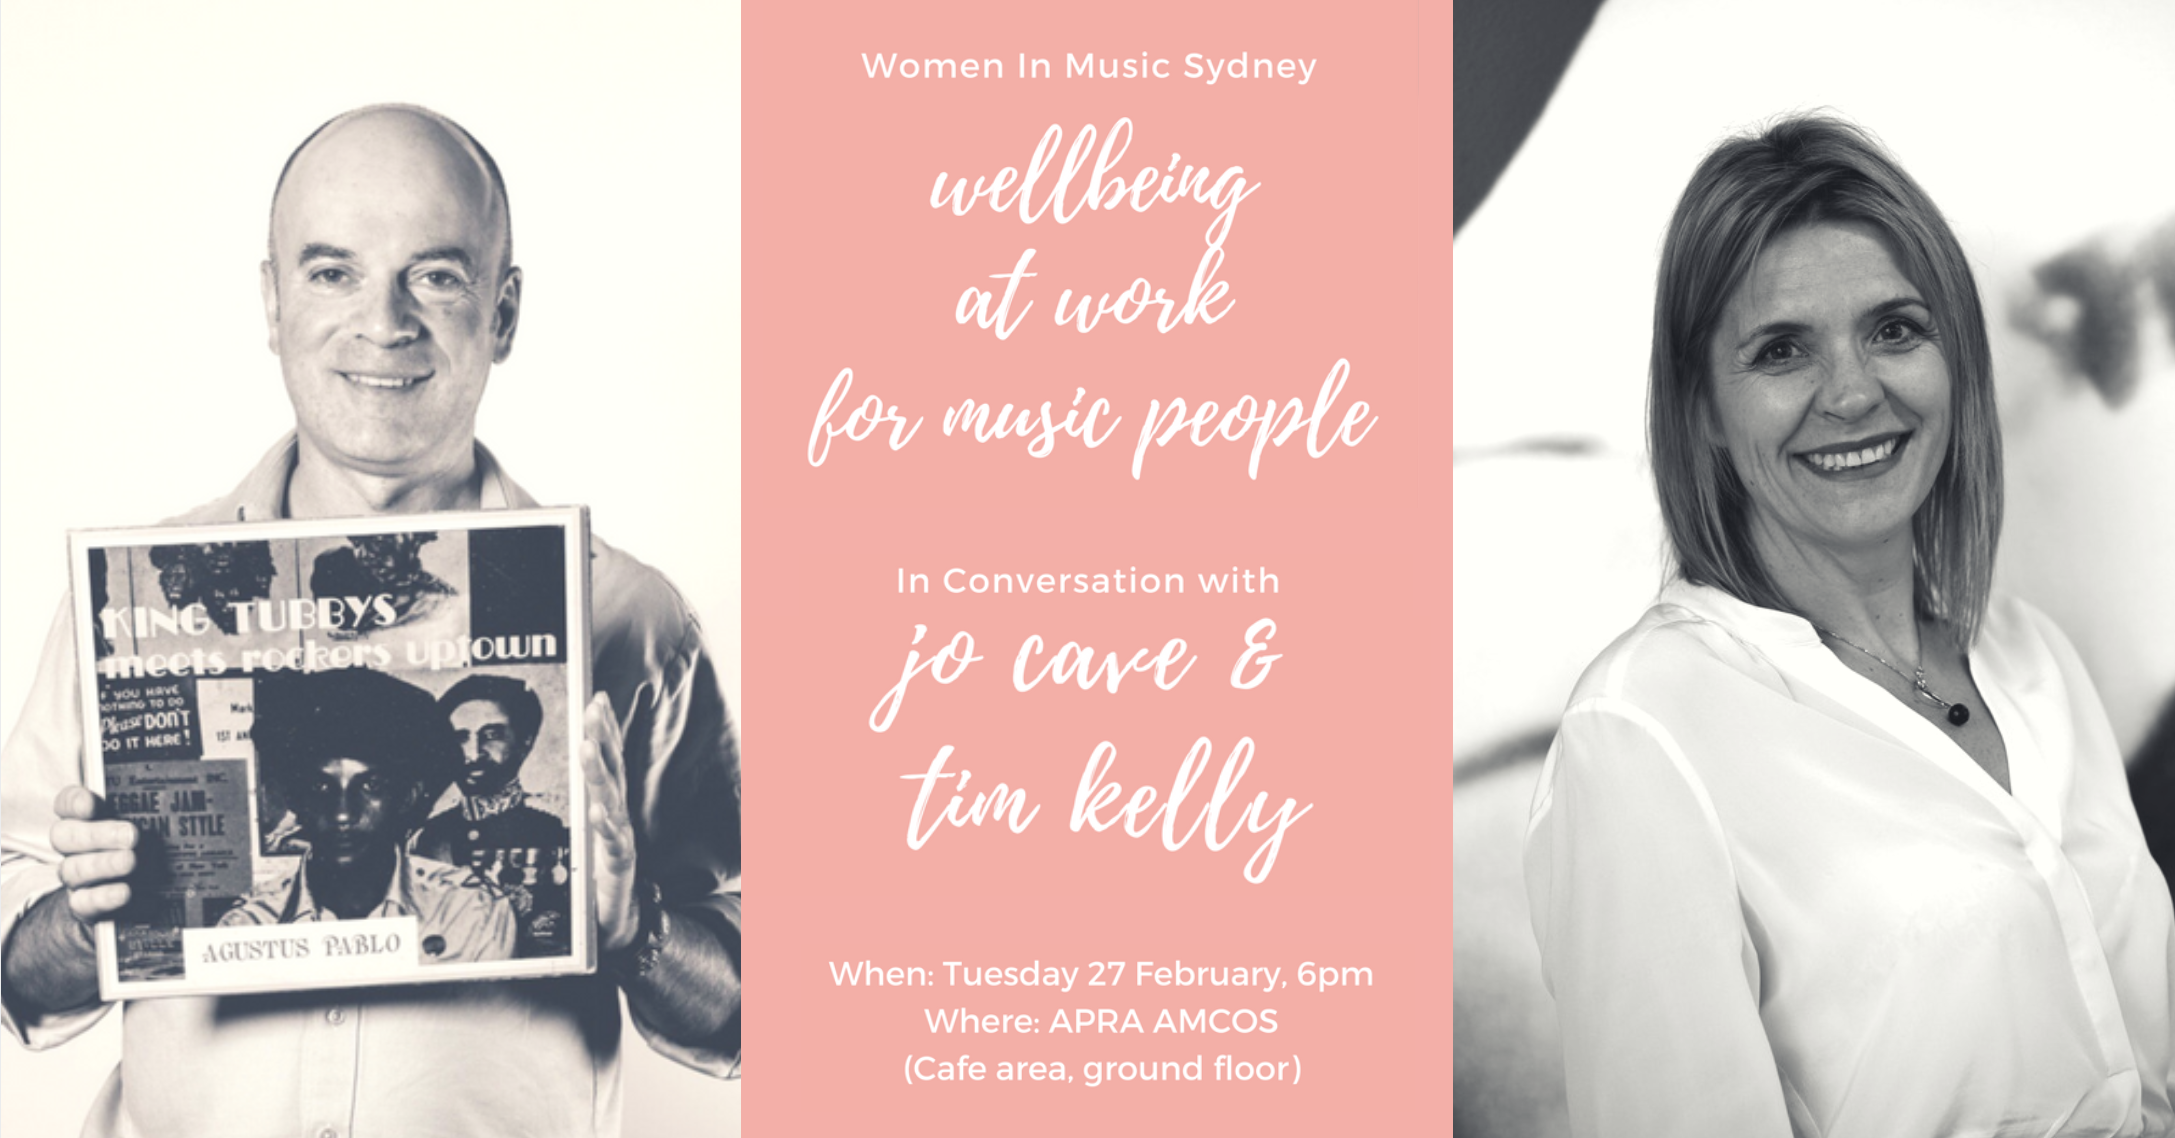 Women In Music Sydney Australia and Jaxsta are proud to present a night on mental health in the music industry:  Well being / at work / for music people - In Conversation with Jo Cave (Support Act) and Tim Kelly (Australian Institute of Music).   Featuring two of the most respected figures in the Australian music industry, this insightful talk will address struggles and challenges faced by musicians and music industry professionals, and the ways we can overcome them, as we head into the new year. It all kicks off at 6pm on Tuesday 27 February at APRA AMCOS (Cafe area, ground floor). Grab your tickets now to avoid missing out! Tickets are $25+bf and include food and drink on the night.